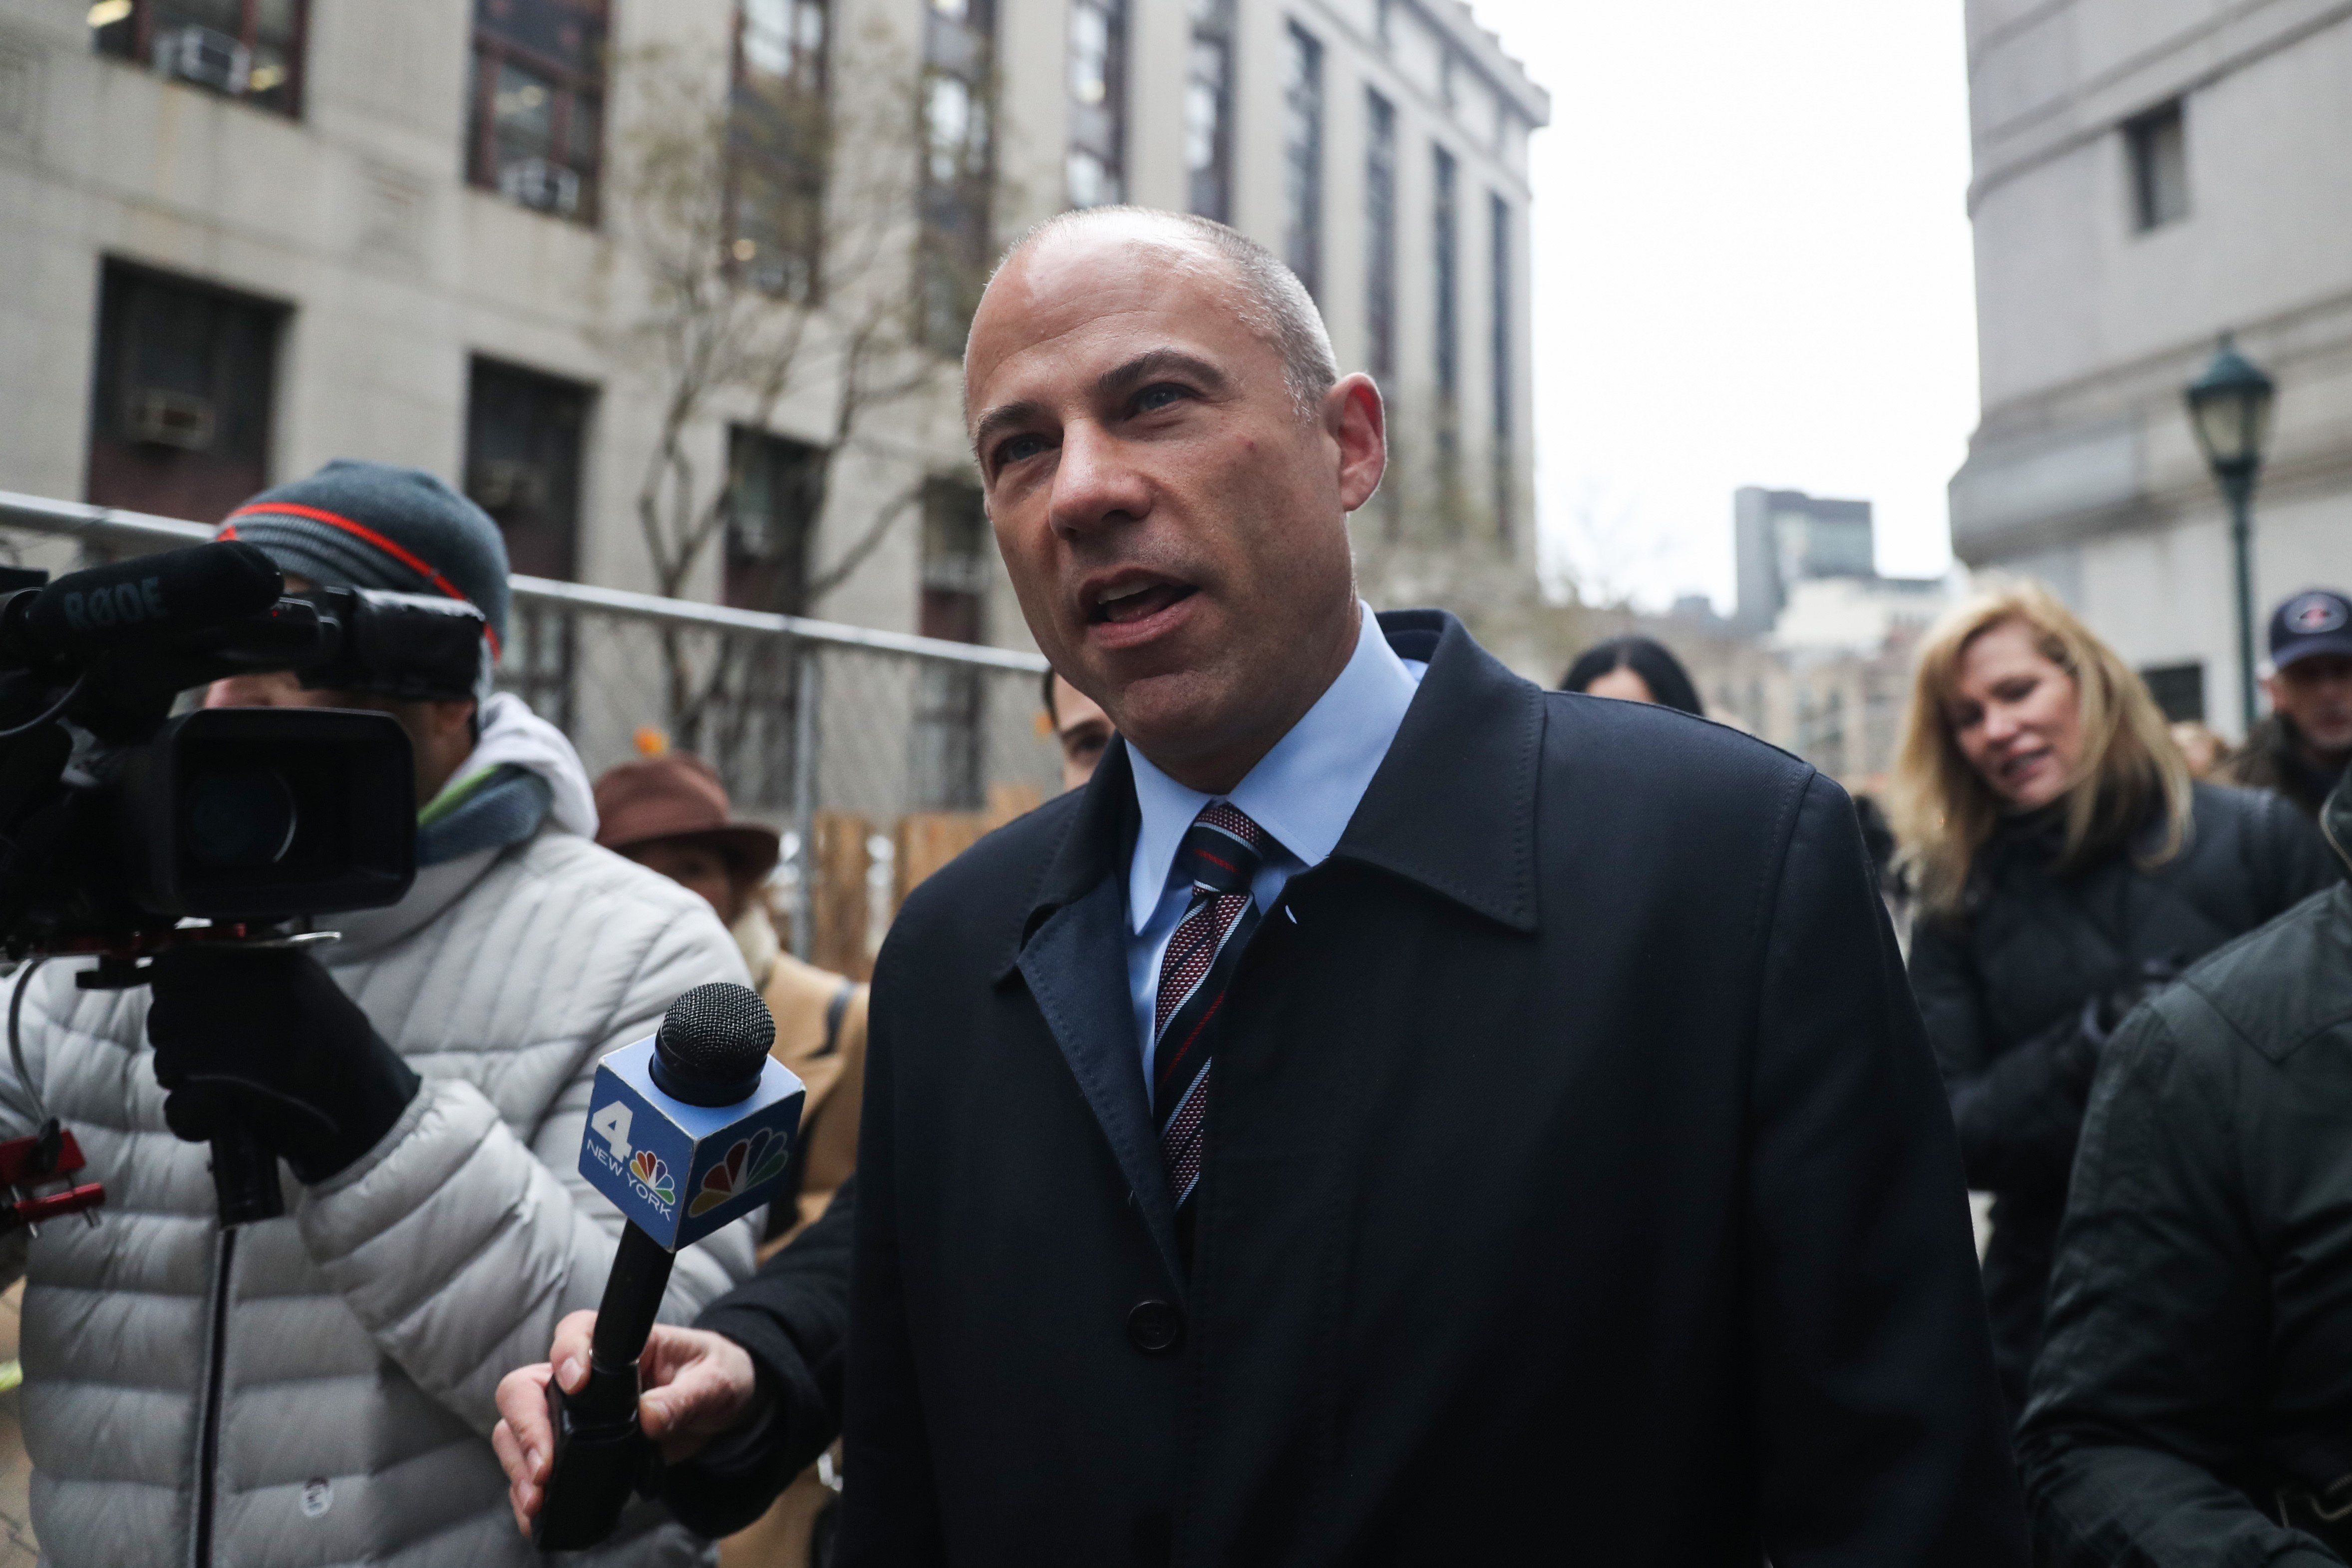 NEW YORK, USA - DECEMBER 12 : Michael Avenatti, attorney for Stephanie Clifford walks outside federal court after Michael Cohen's sentencing hearing in New York, United States on December 12, 2018. (Photo by Atilgan Ozdil/Anadolu Agency/Getty Images)